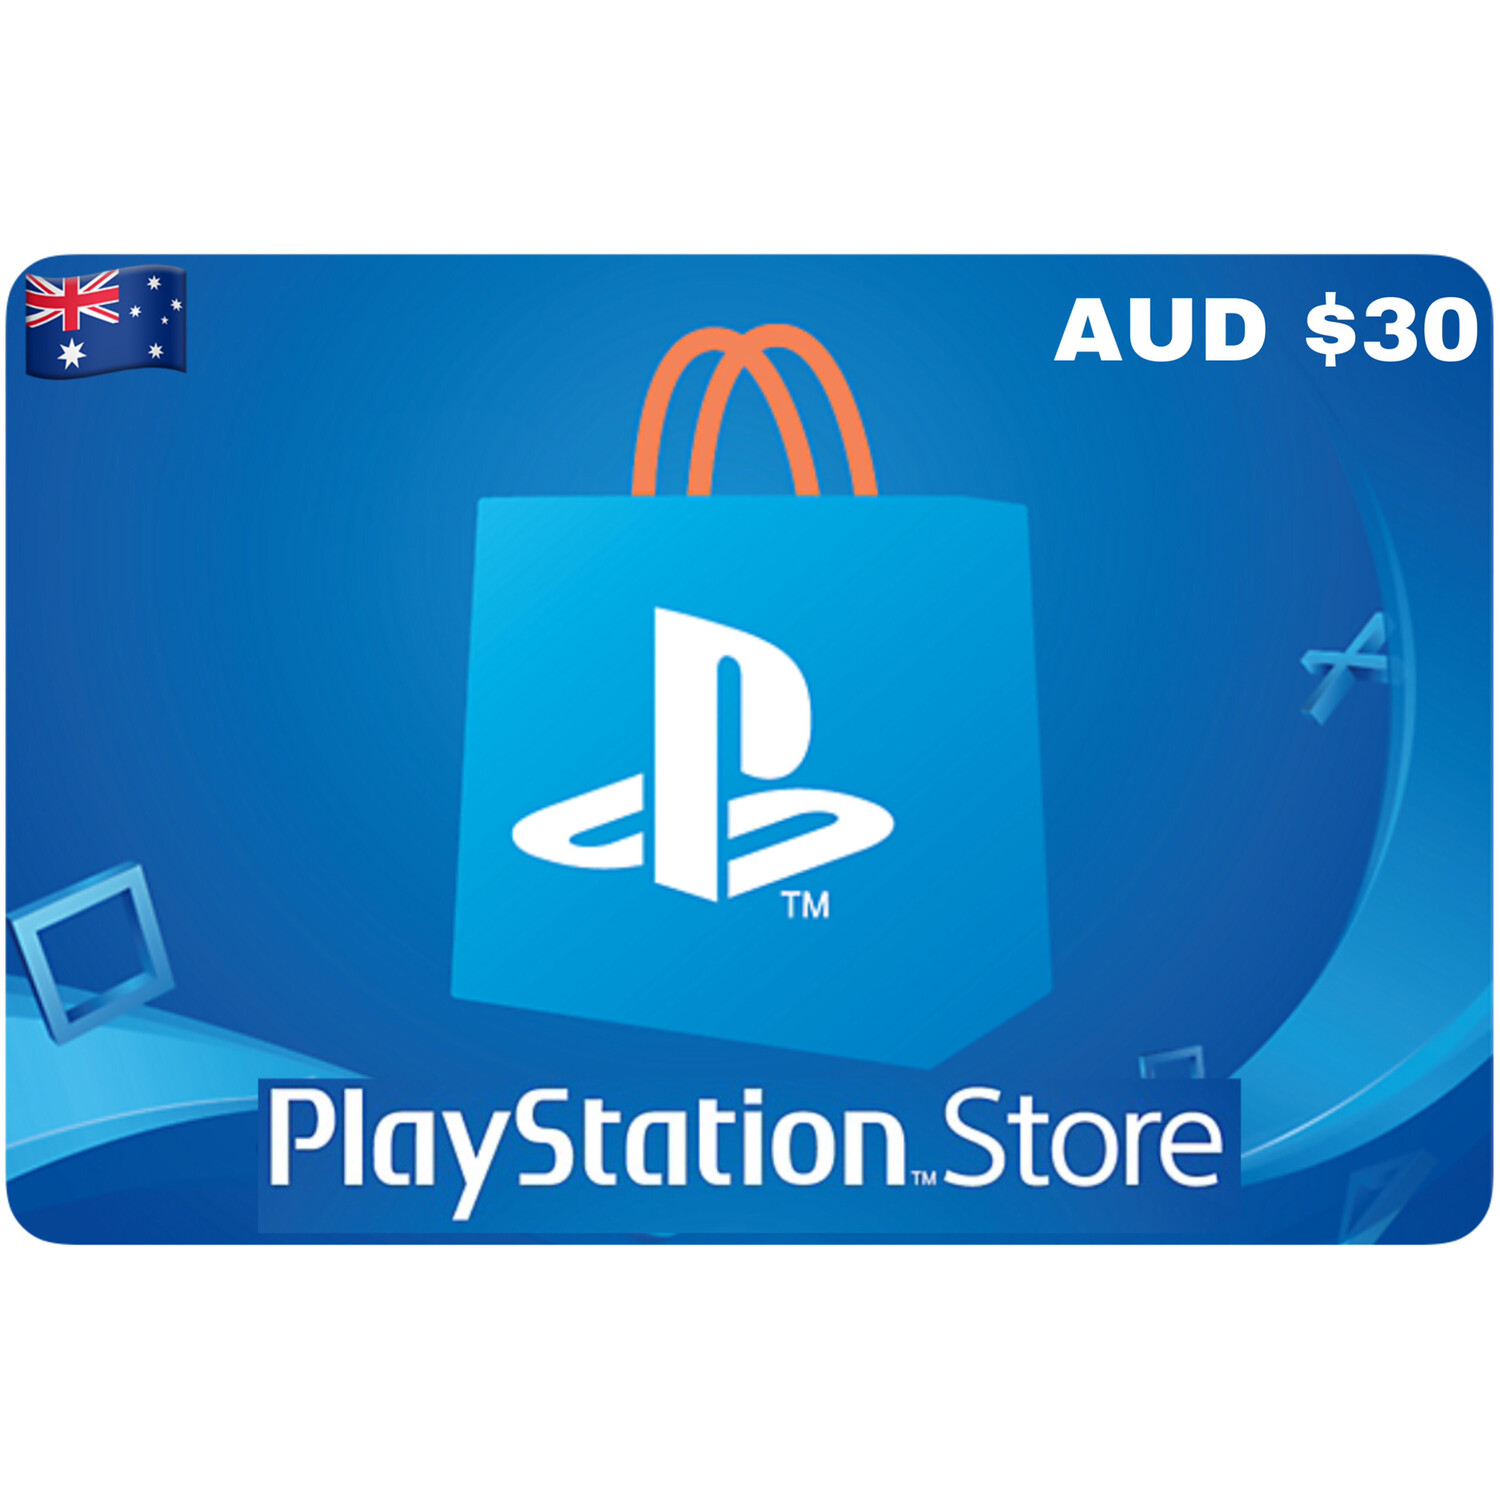 Playstation Store Gift Card Australia AUD $30